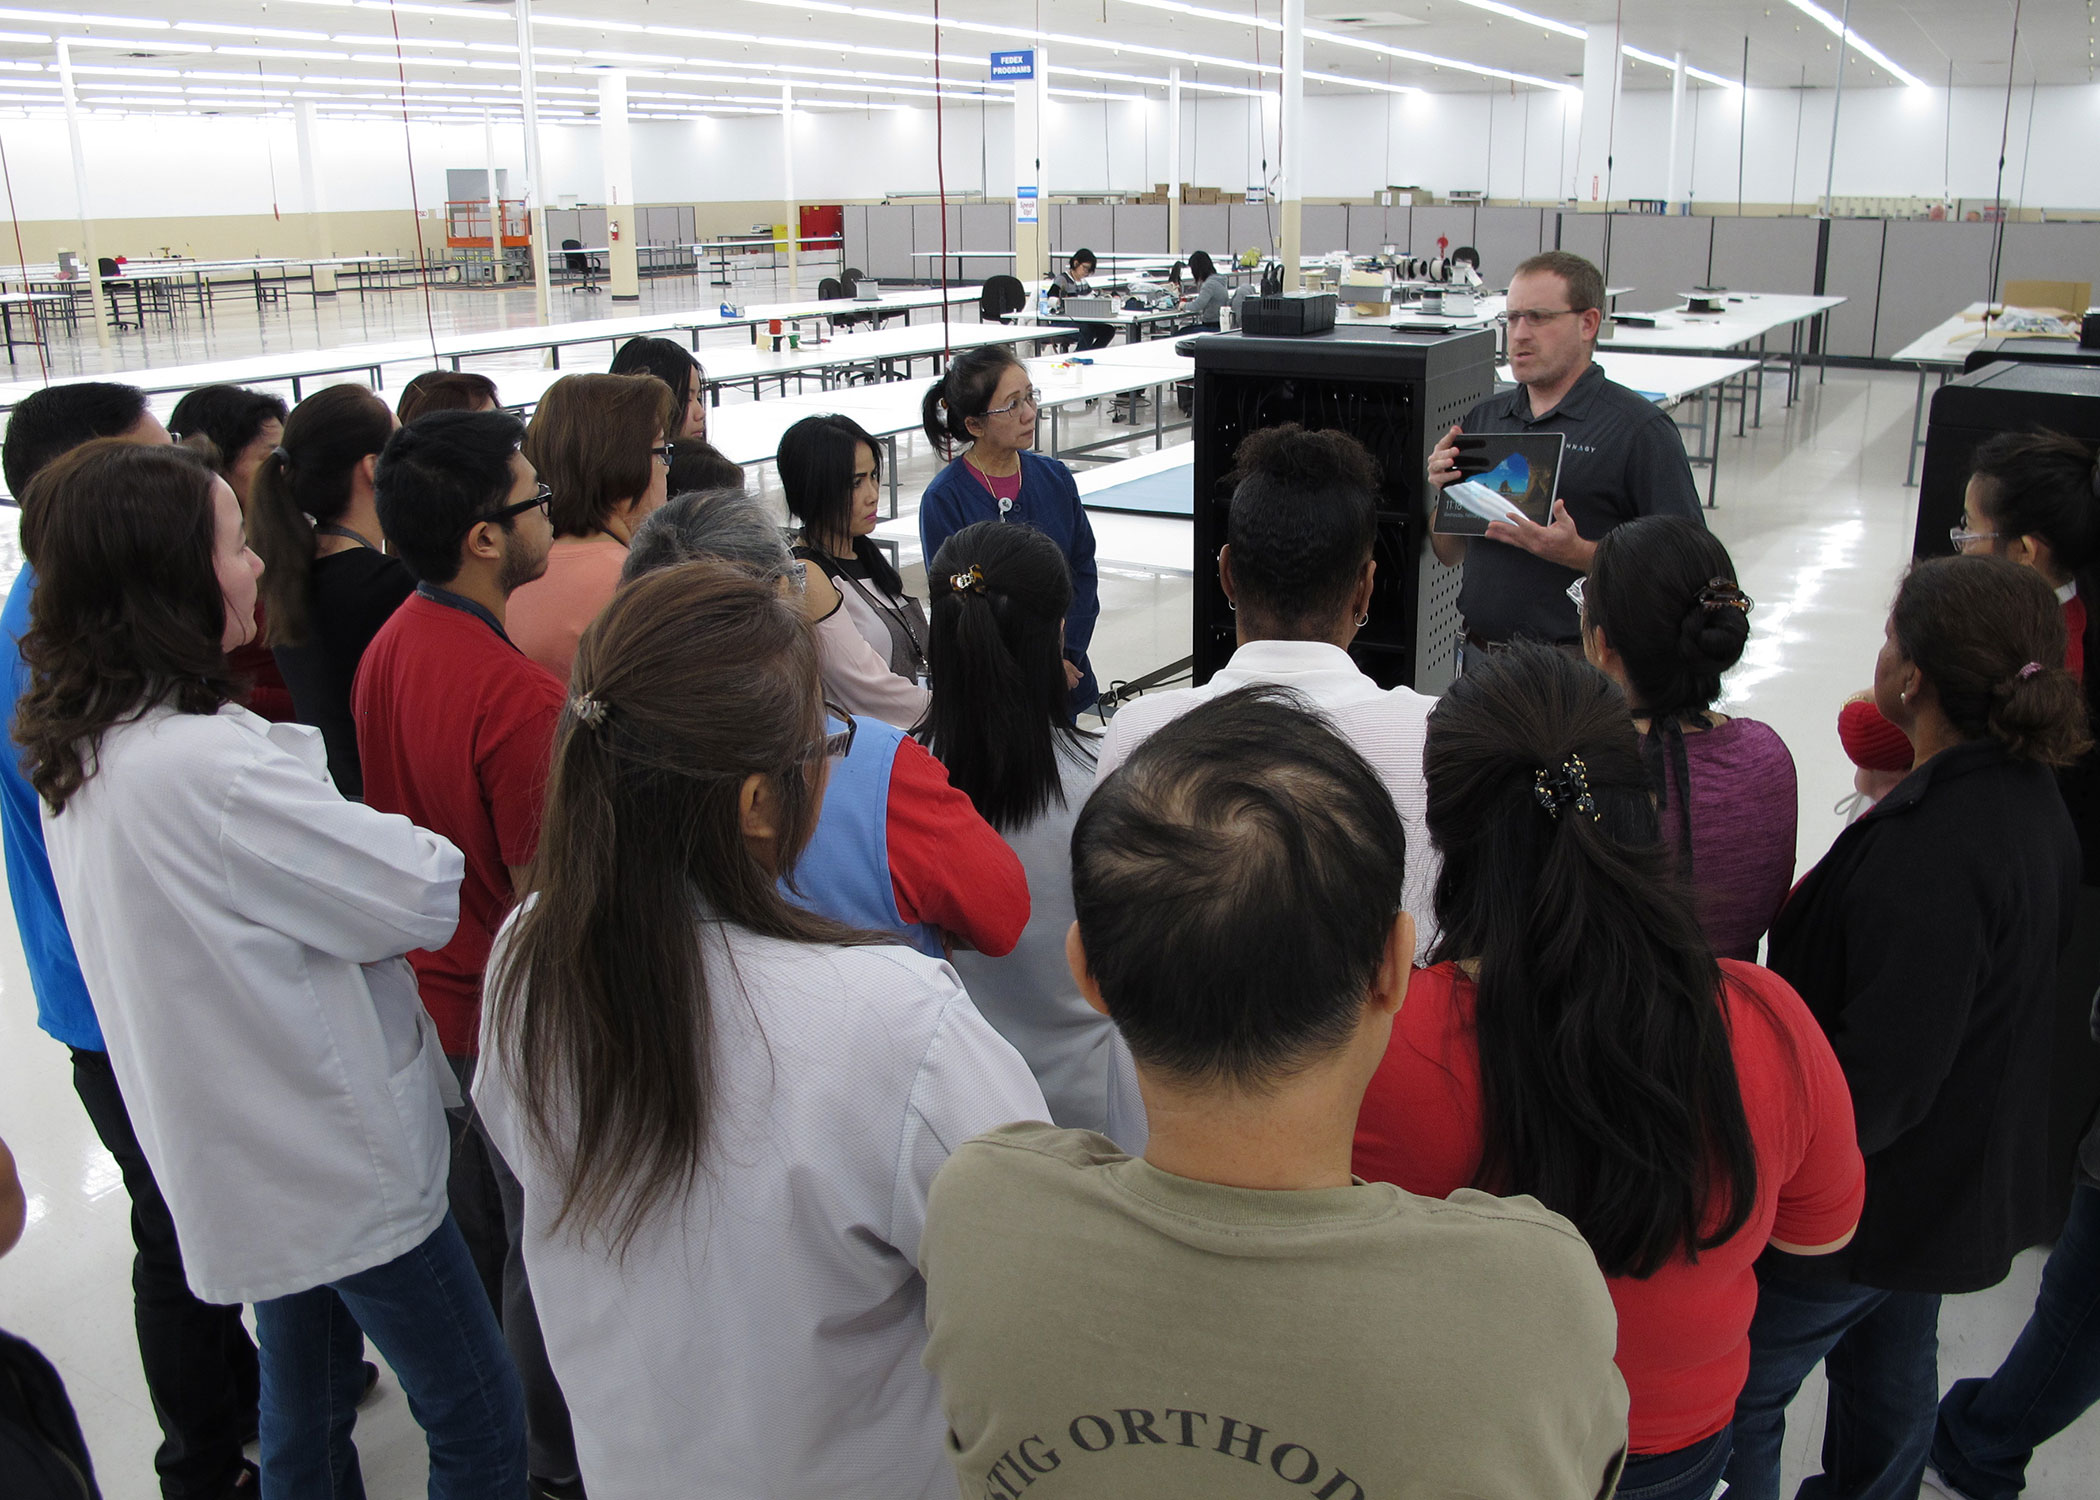 Wire Harness manufacturing training